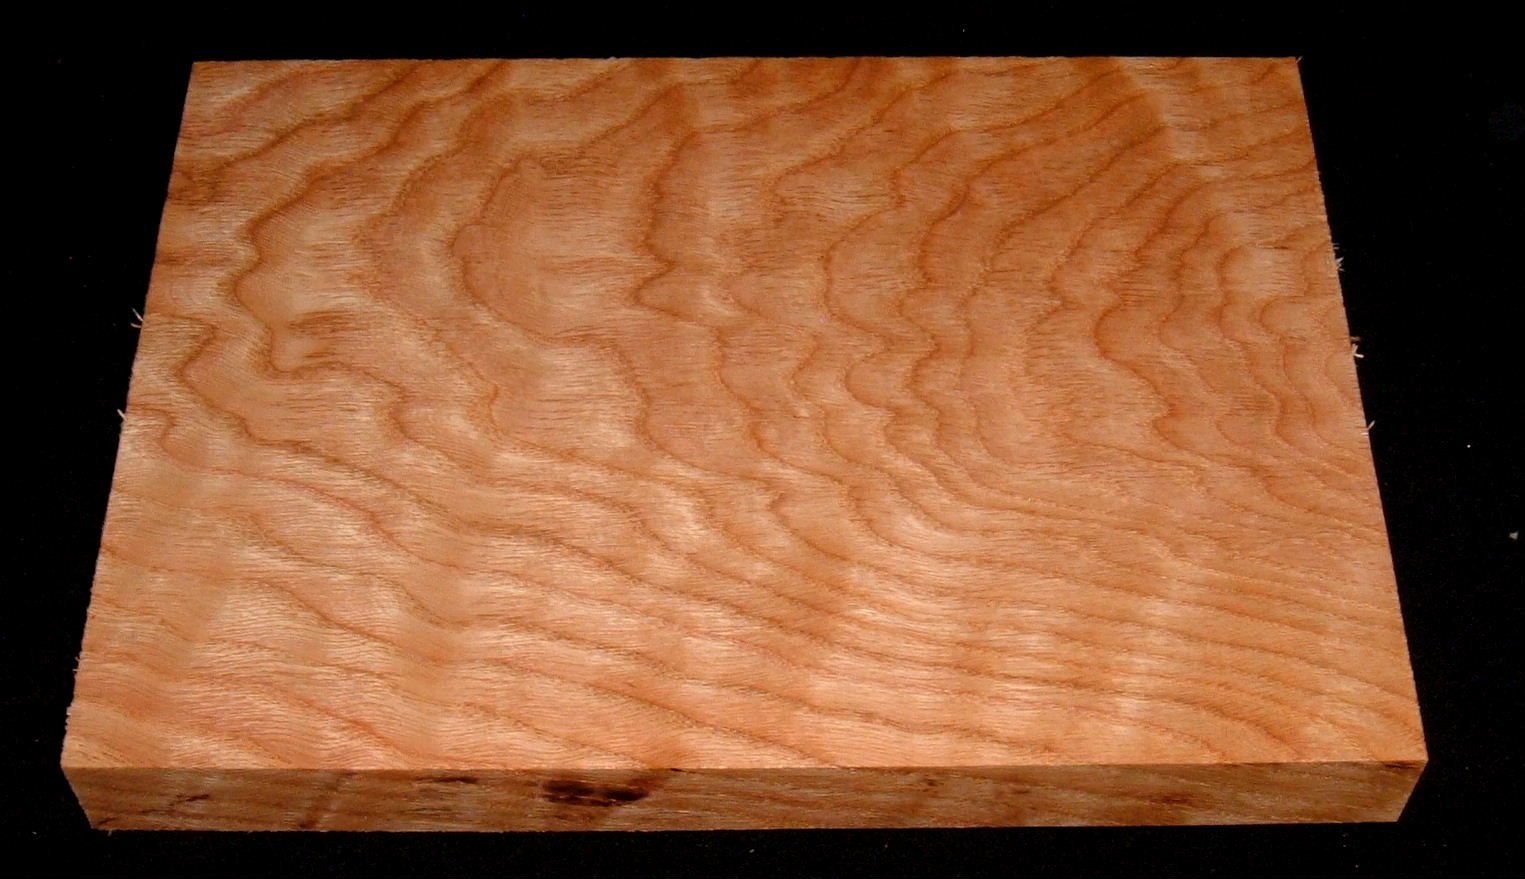 ROS-3177, 1-1/8x7-3/4x10-3/4, Curly Figured Tiger Red Oak